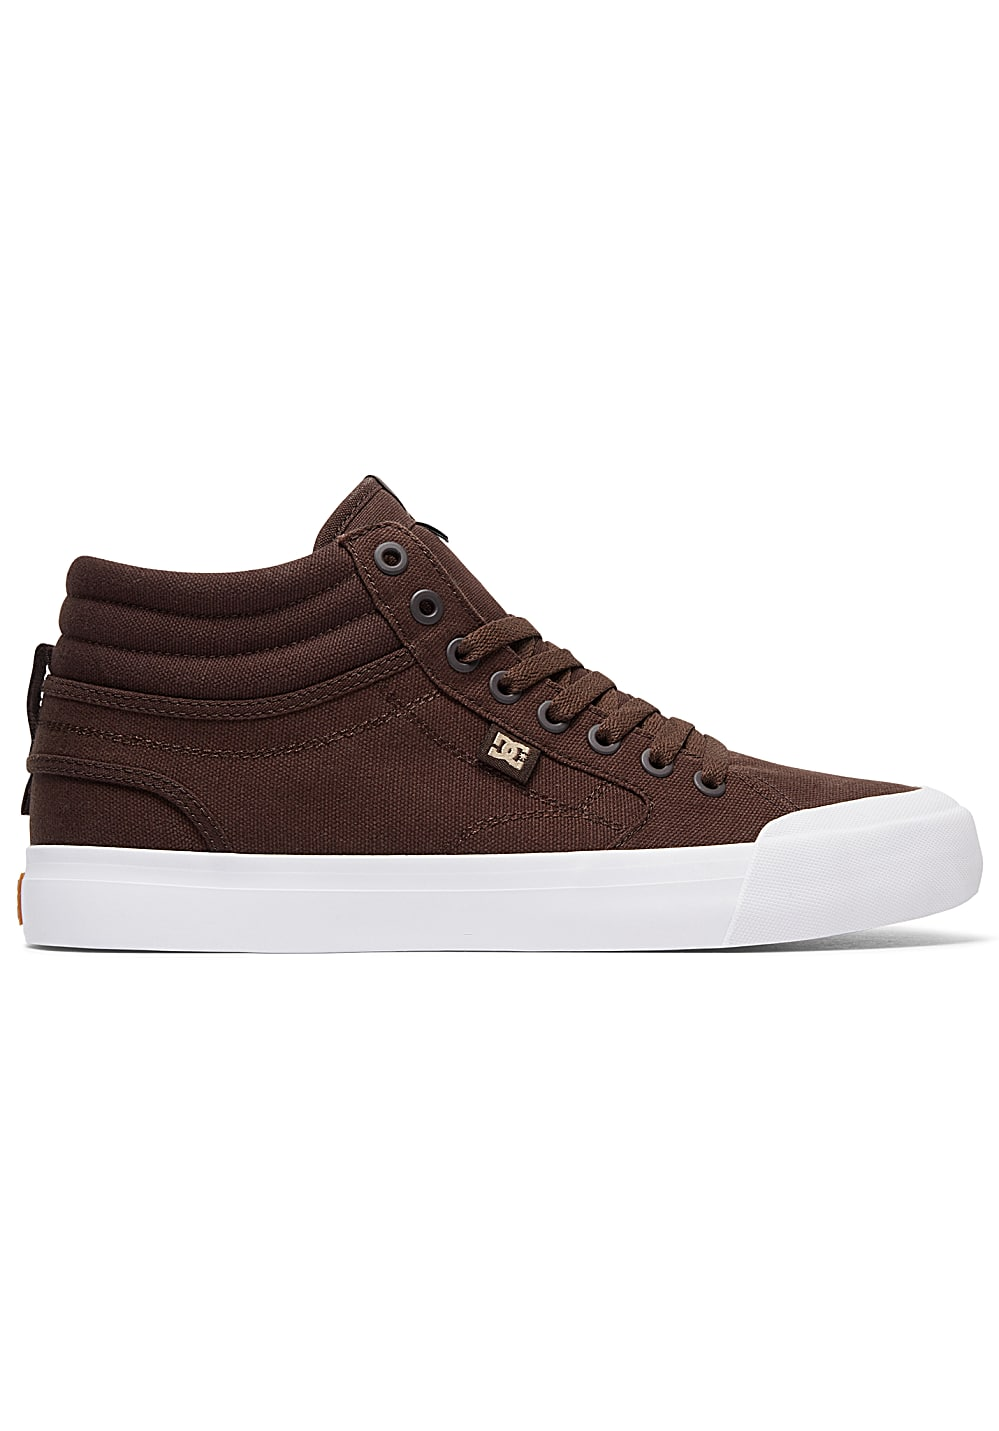 DC Evan Smith High TX Sneaker für Herren Braun